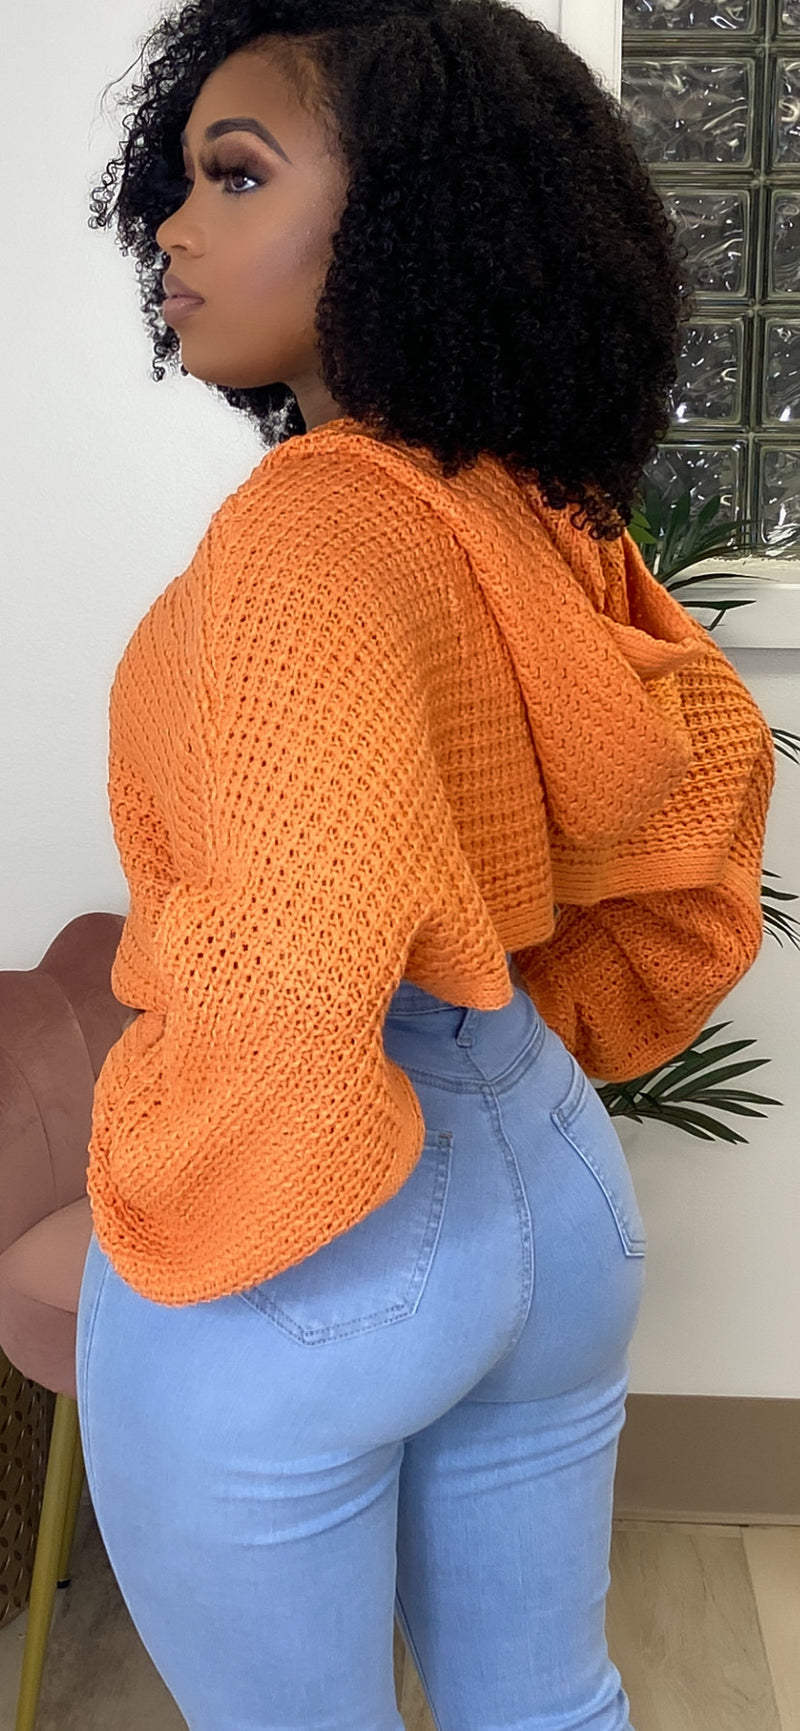 AMIR CROPPED HOODIE KNIT SWEATER - Spice Boutique